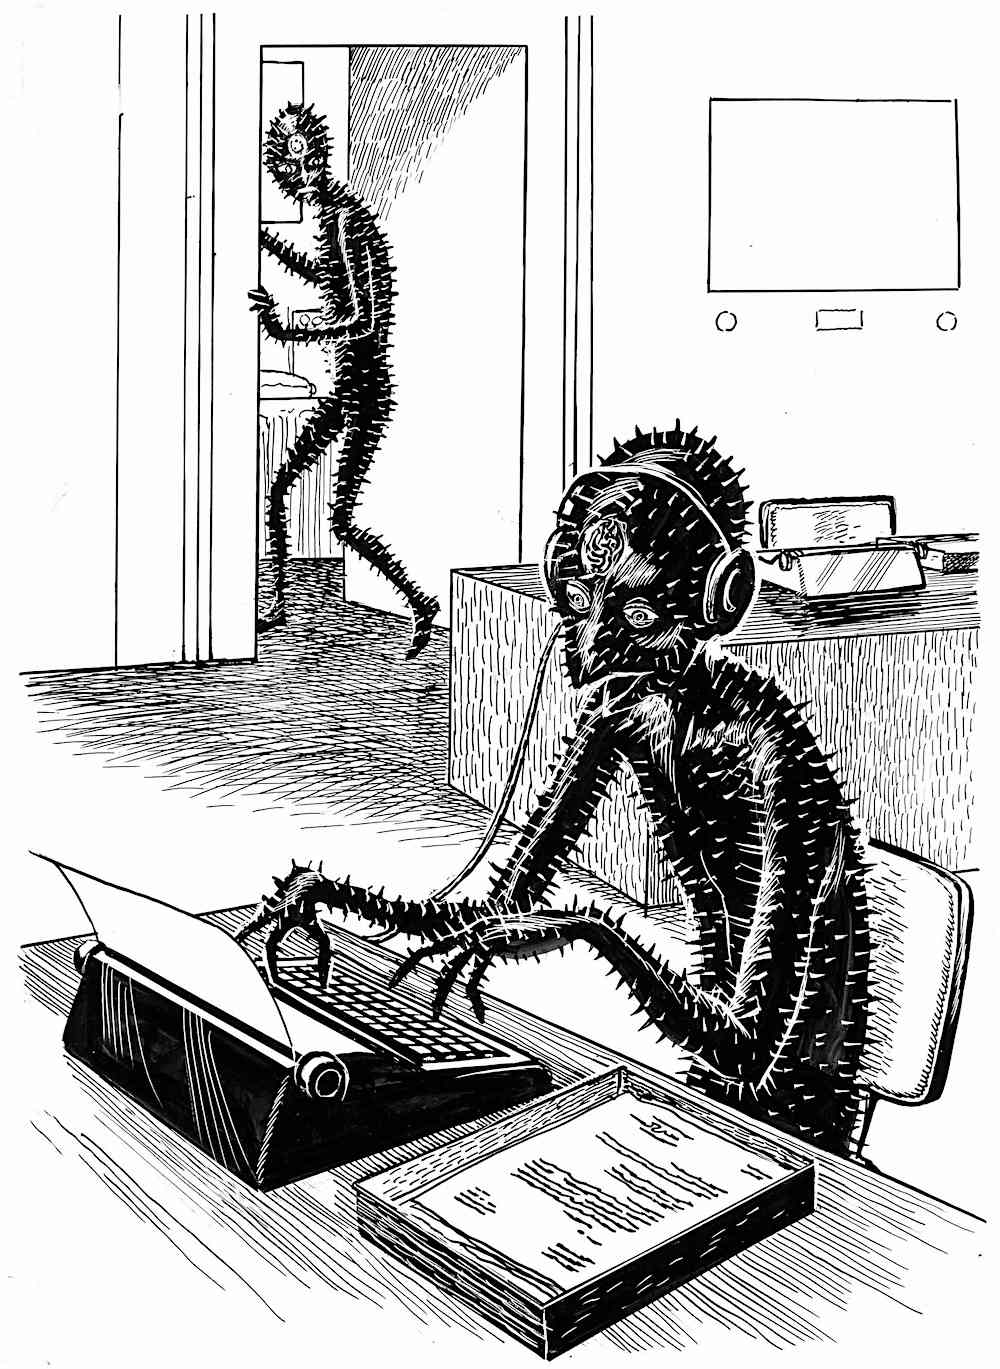 Ed Emshwiller illustration of alien creatures working in an office 1963